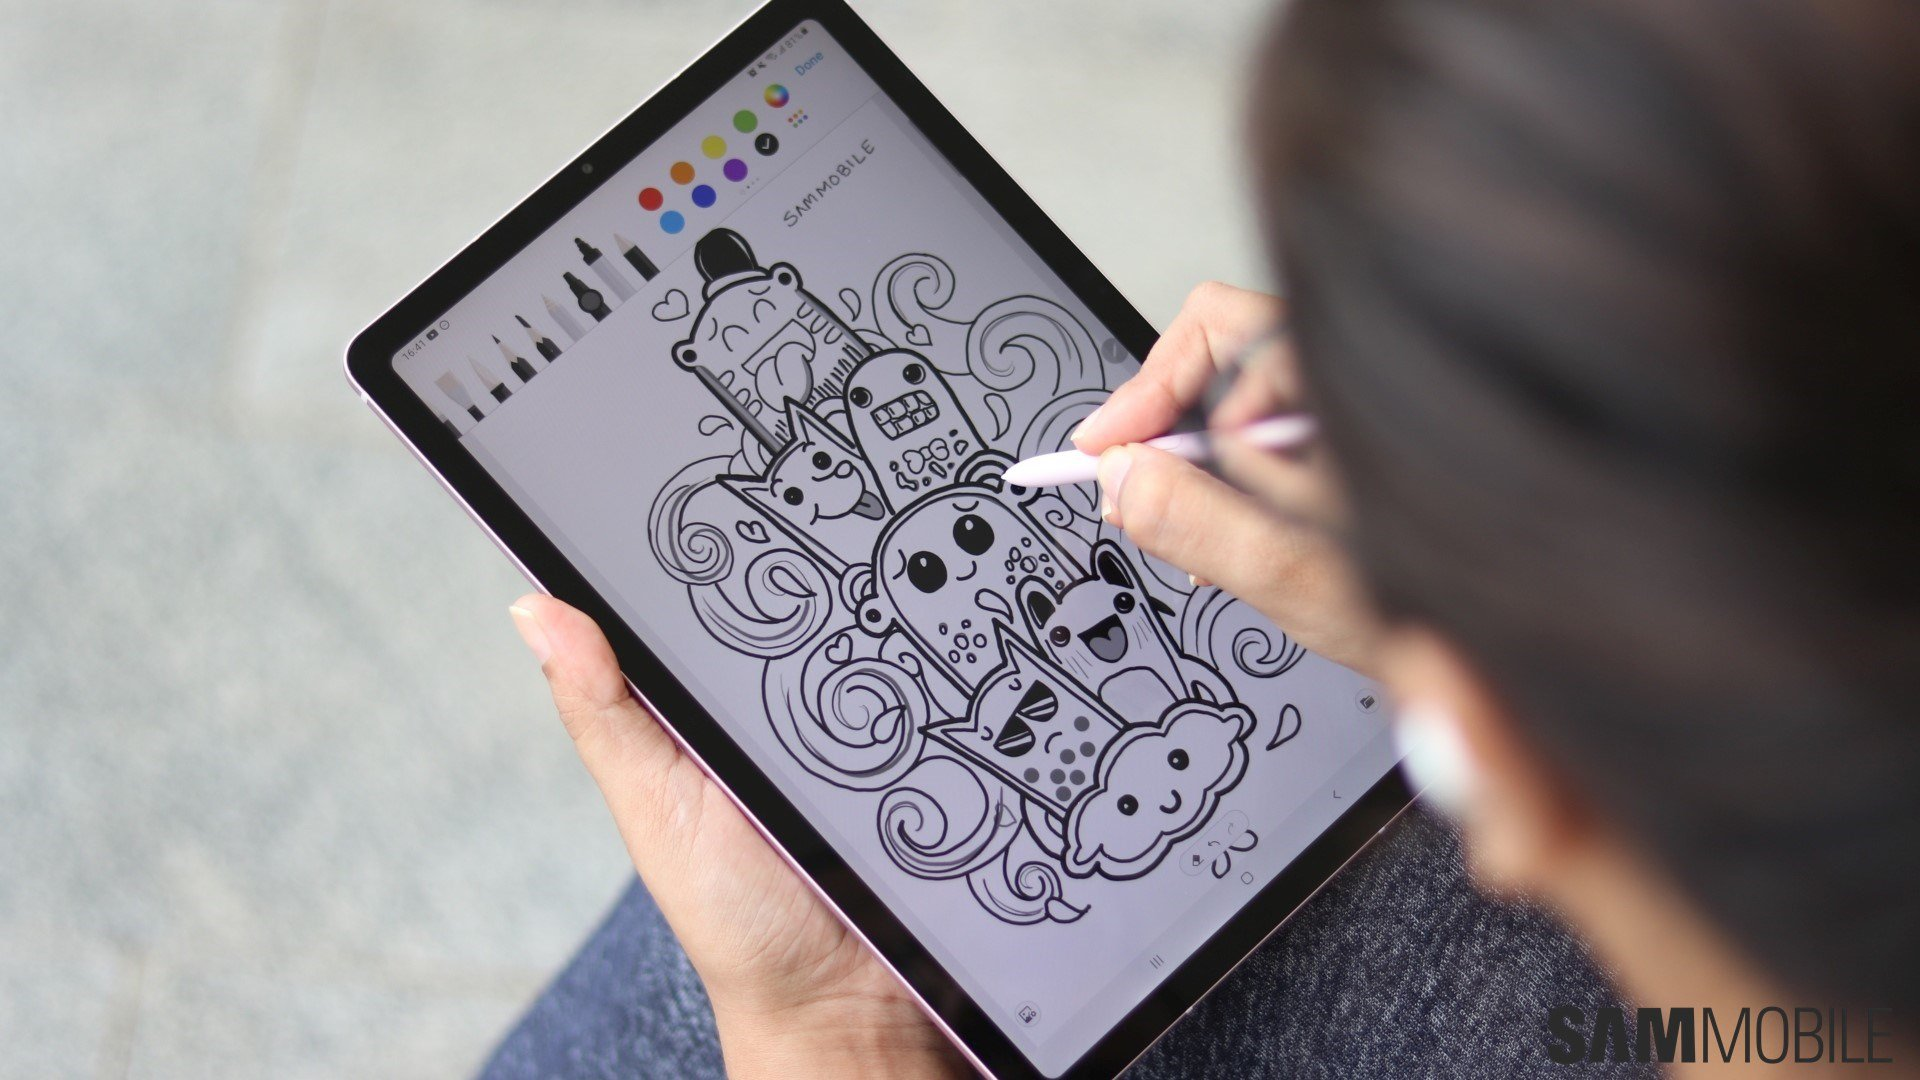 Samsung Galaxy Tab S6 Lite Review Bringing The S Pen To The Masses Sammobile